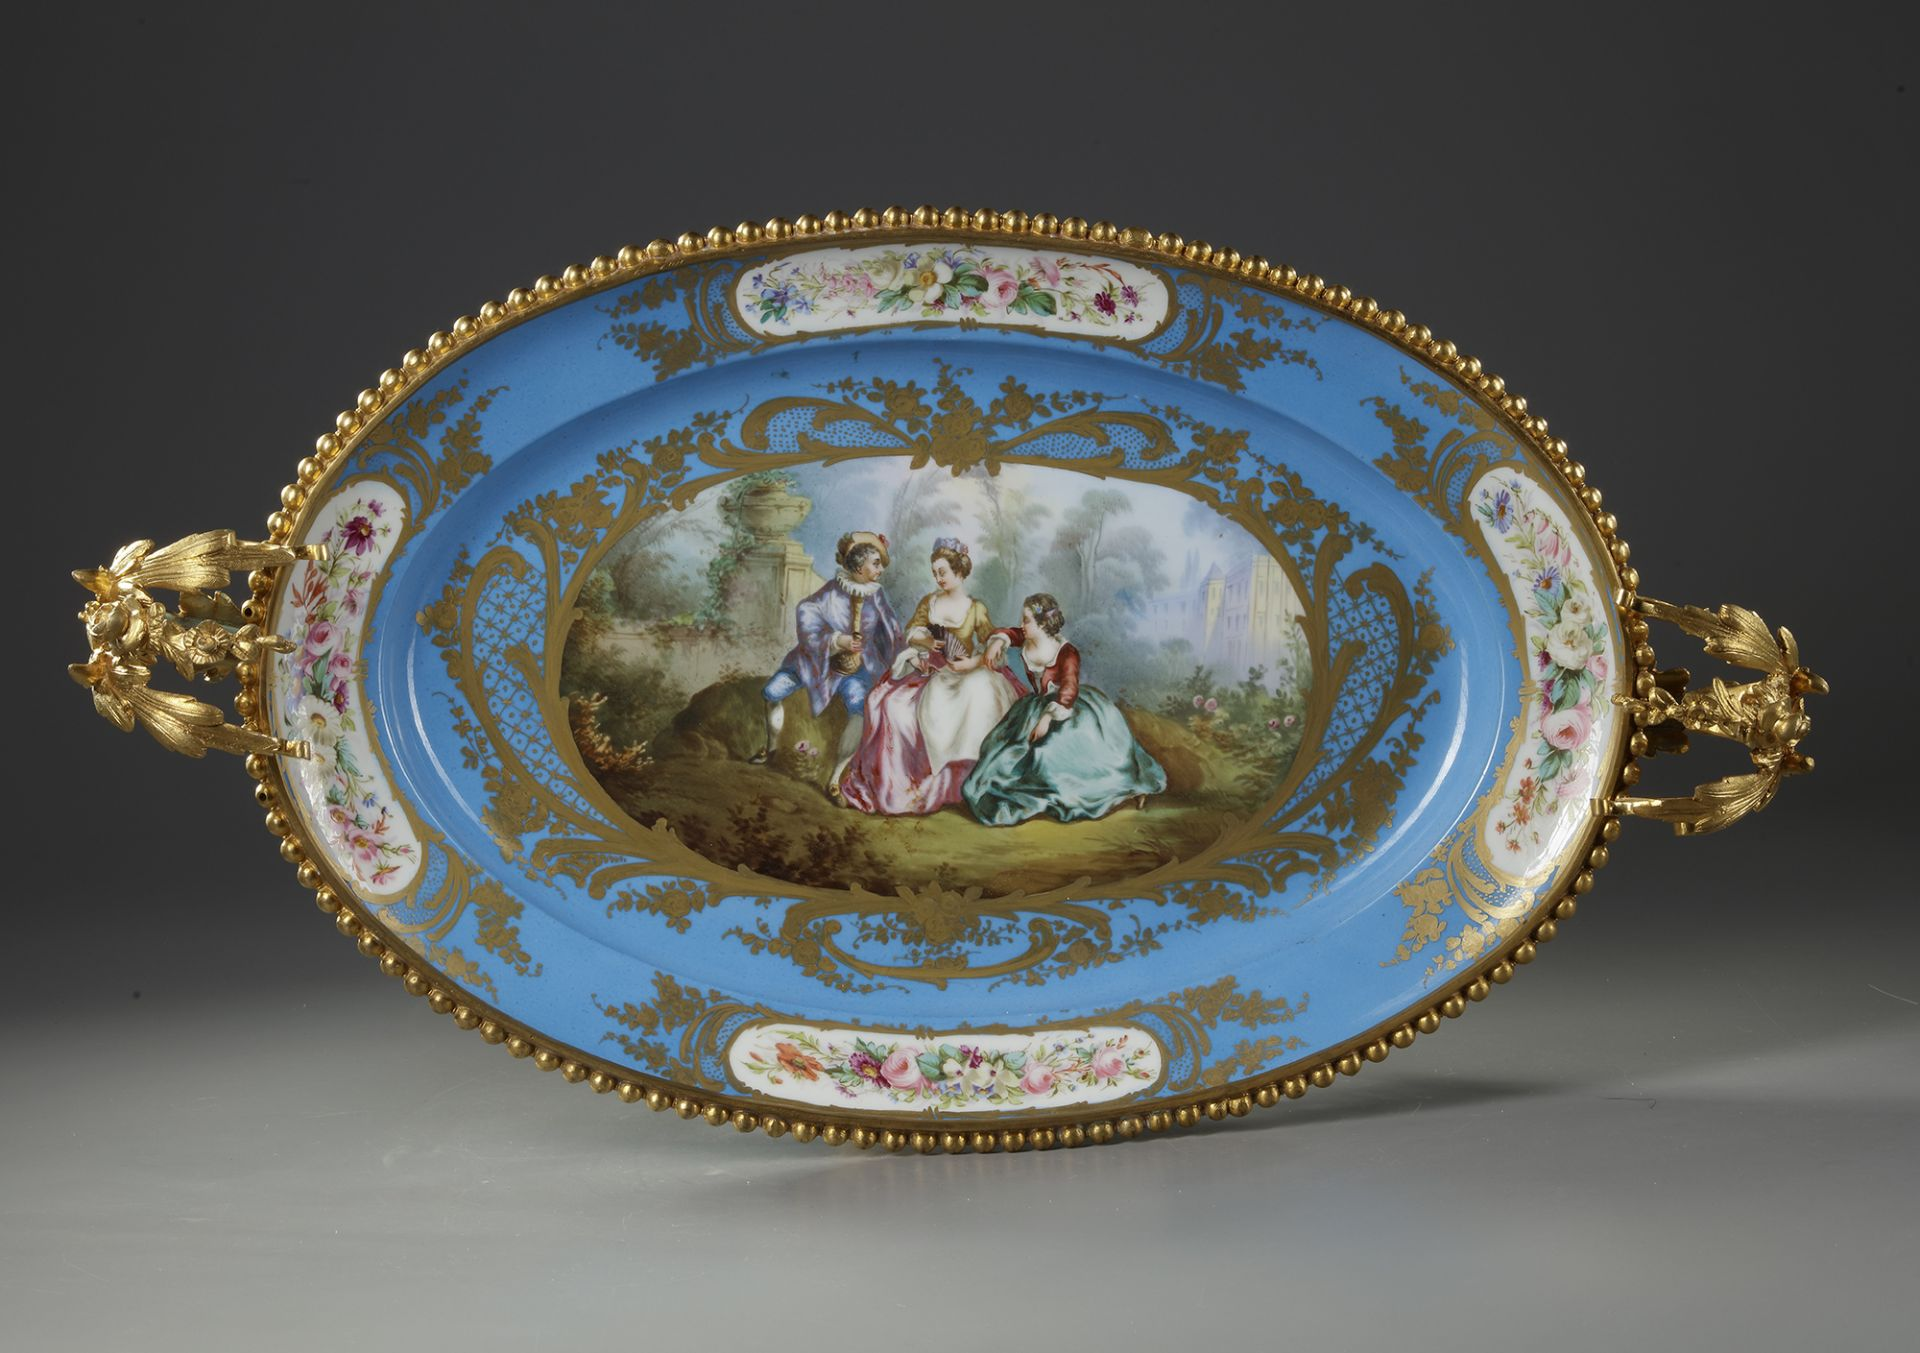 A LARGE 'SEVRES' PLATE, 19TH CENTURY - Image 3 of 5